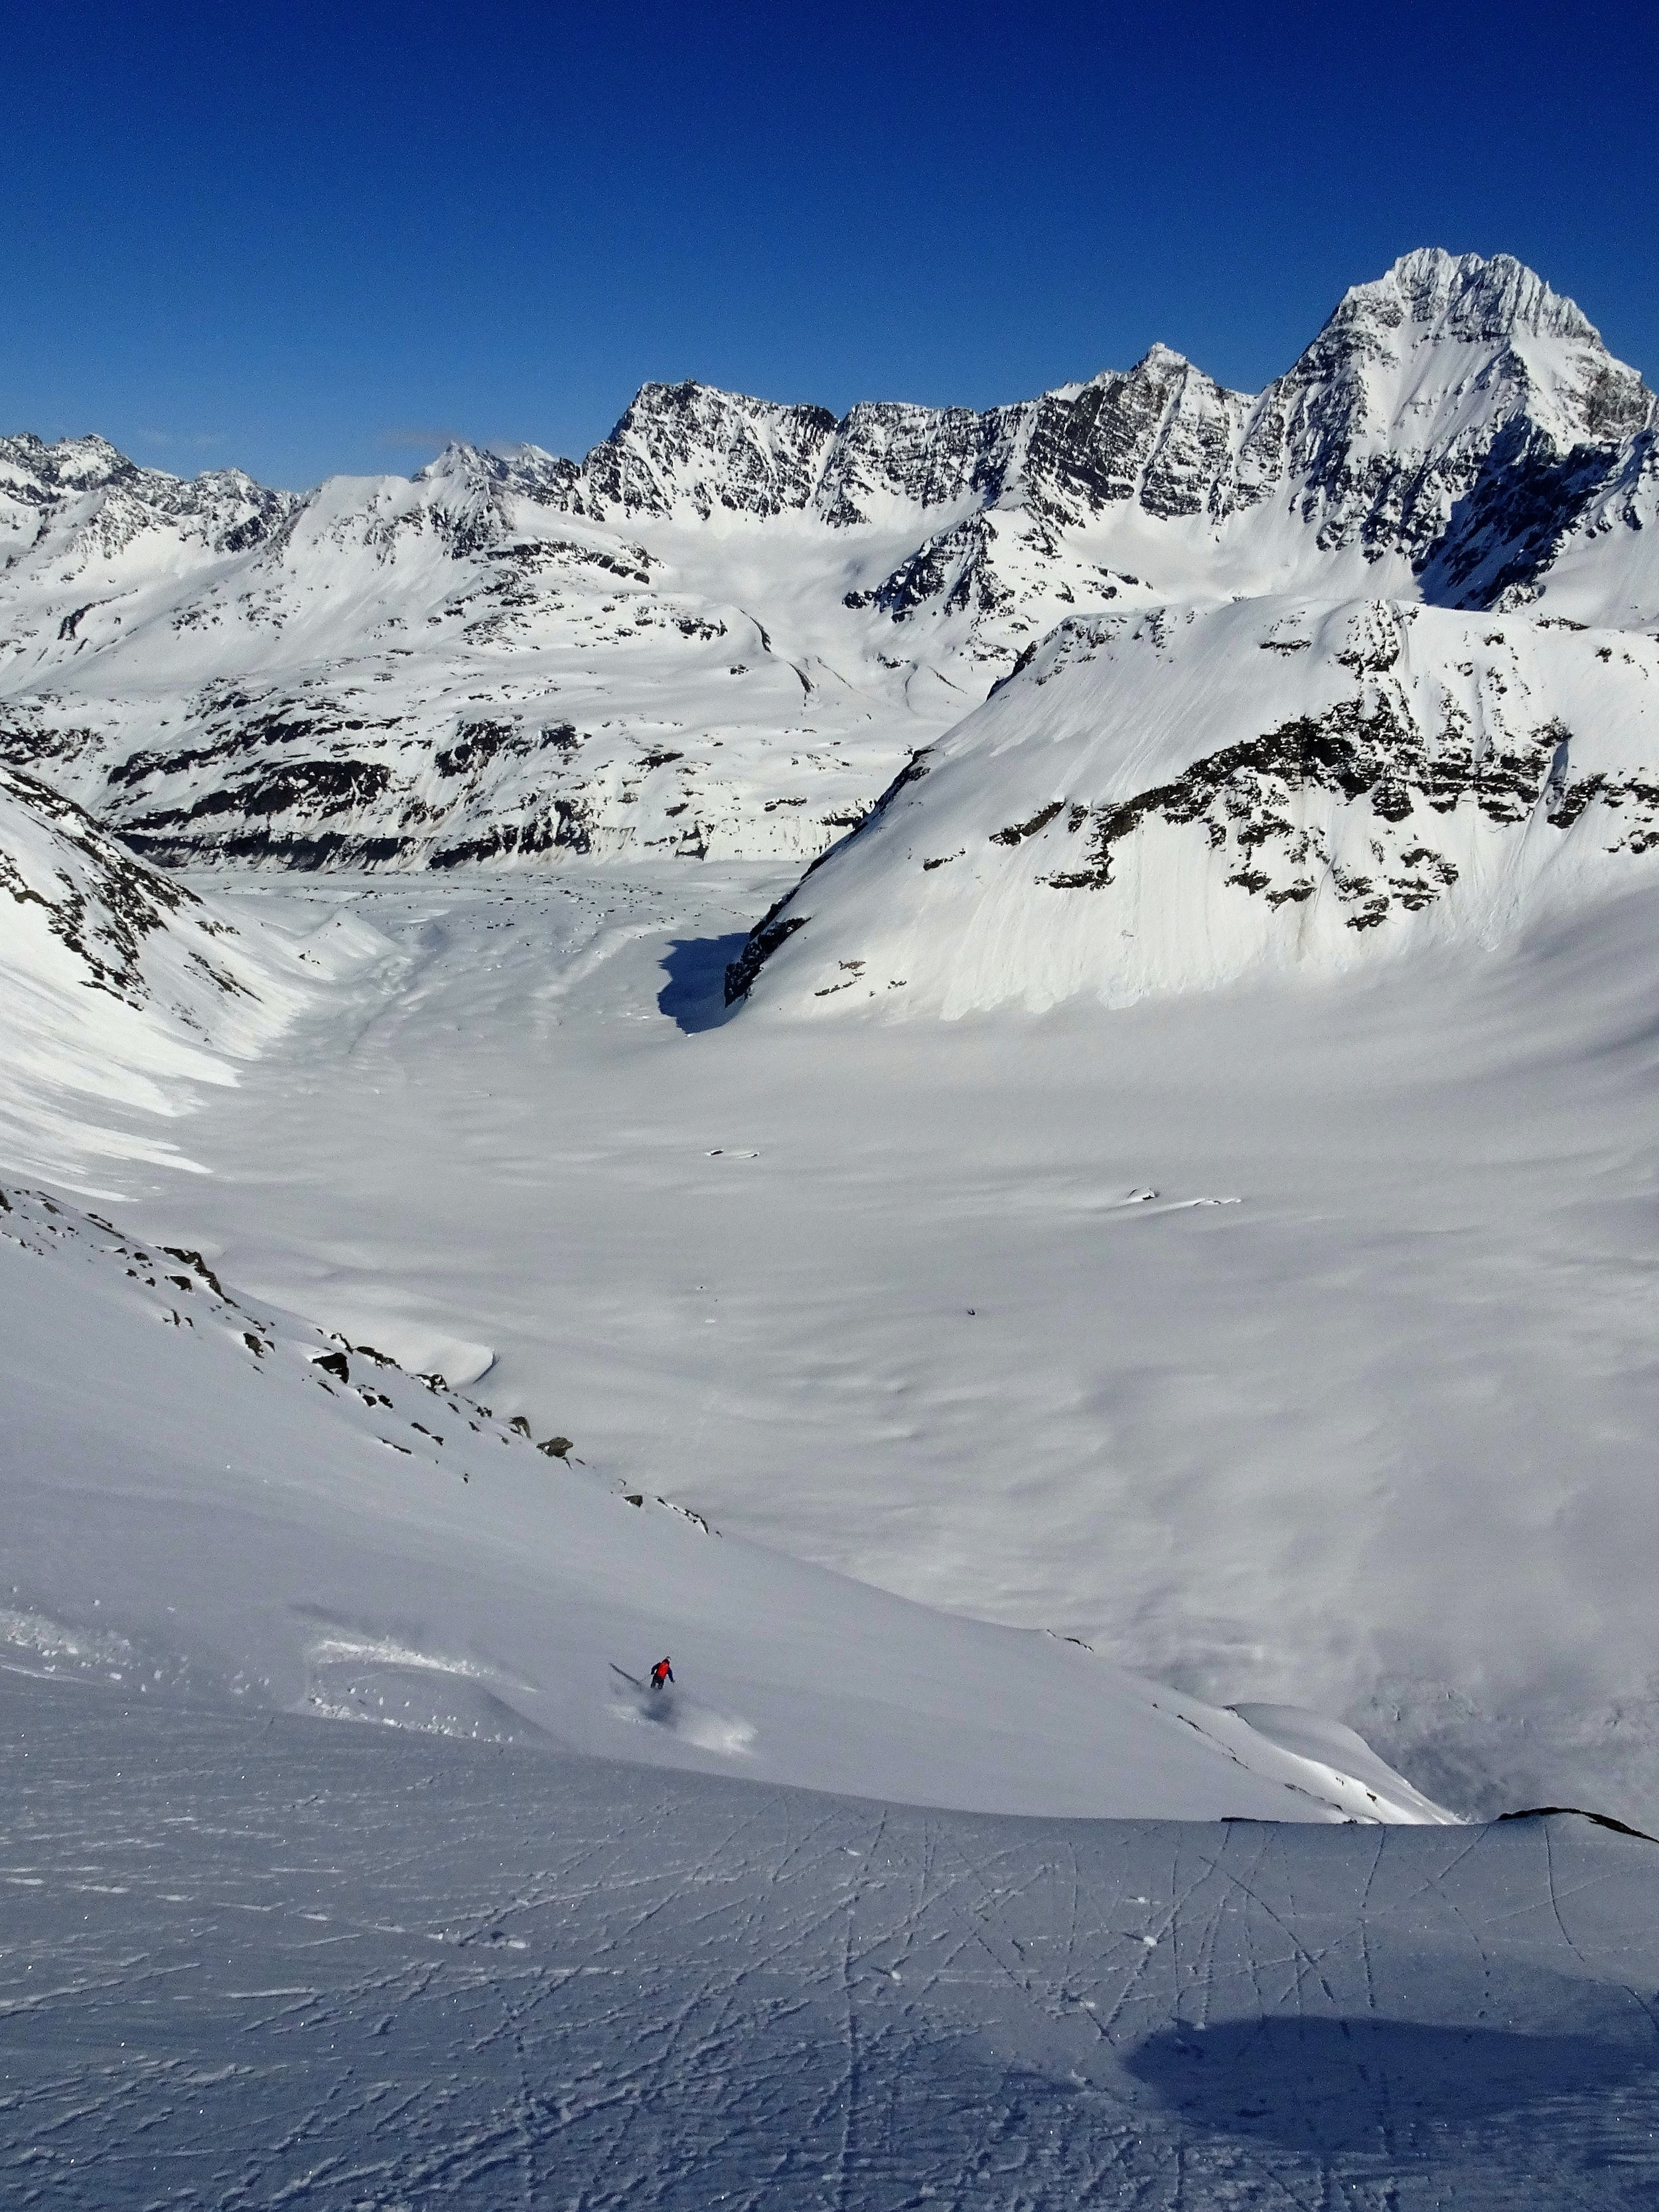 What we waited all week for. Endless steep powder in the high alpine under blue skies.